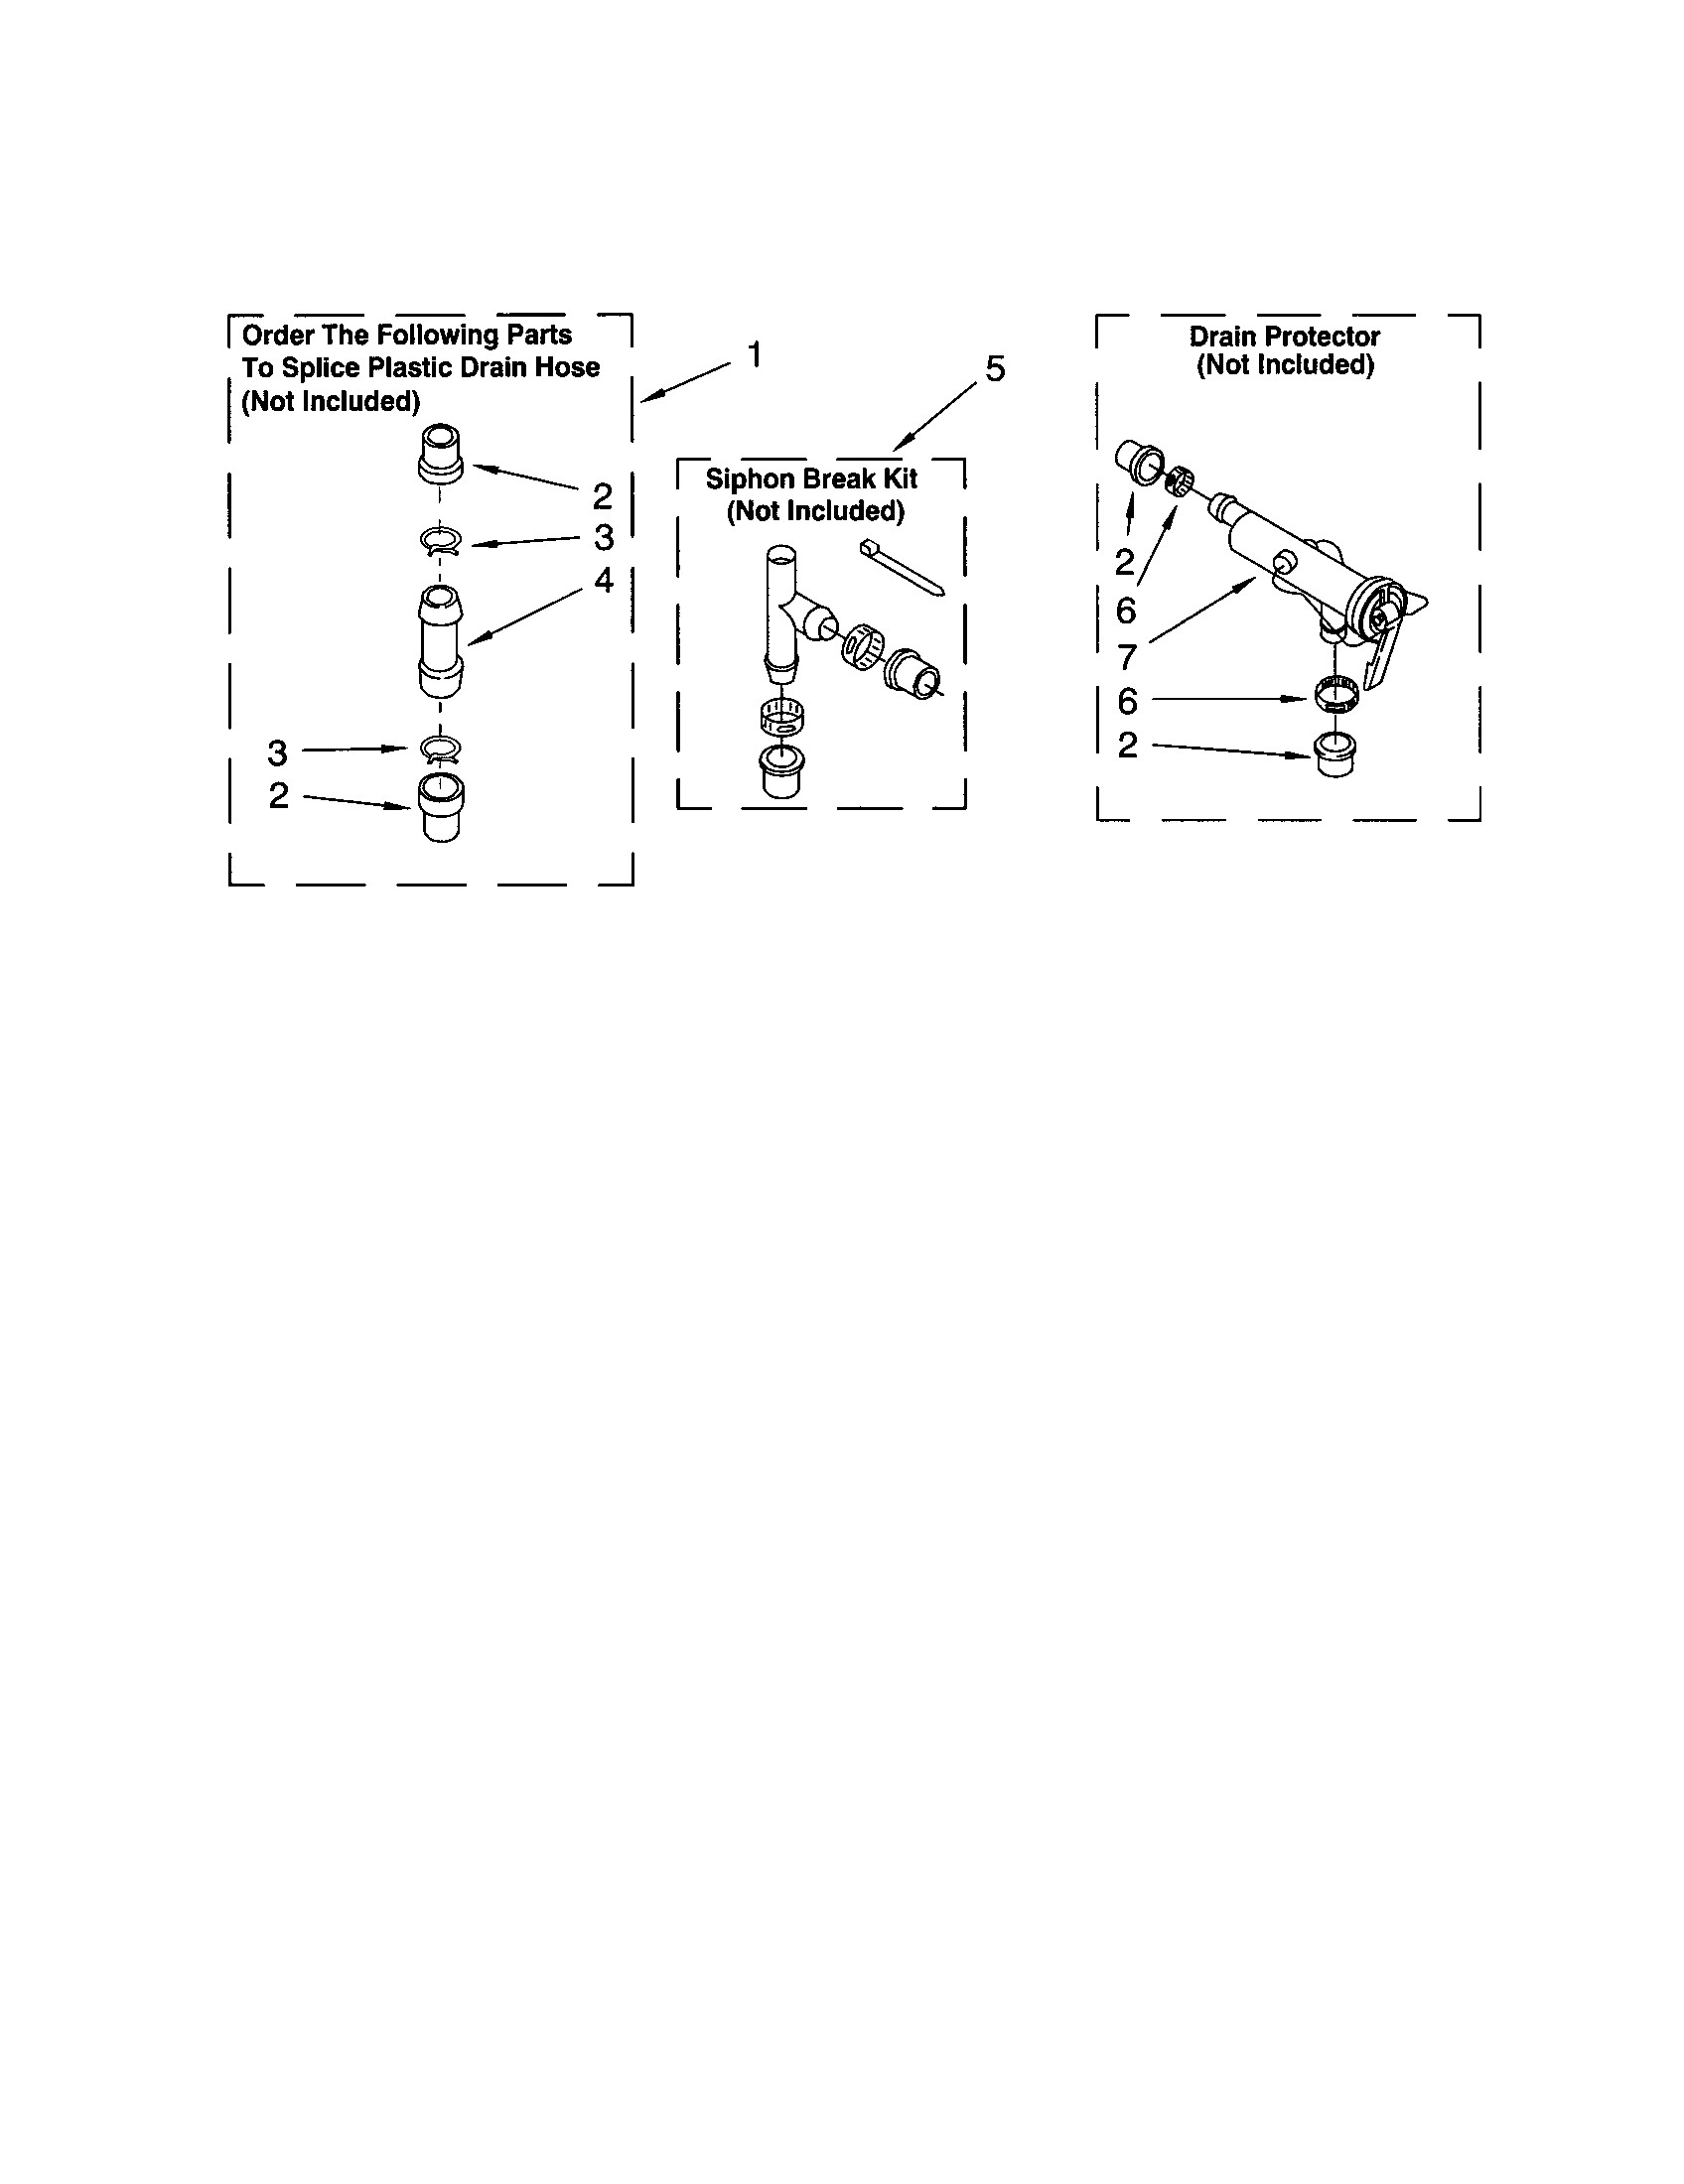 Shock Absorbers Diagram Kenmore Washer Parts Of Shock Absorbers Diagram